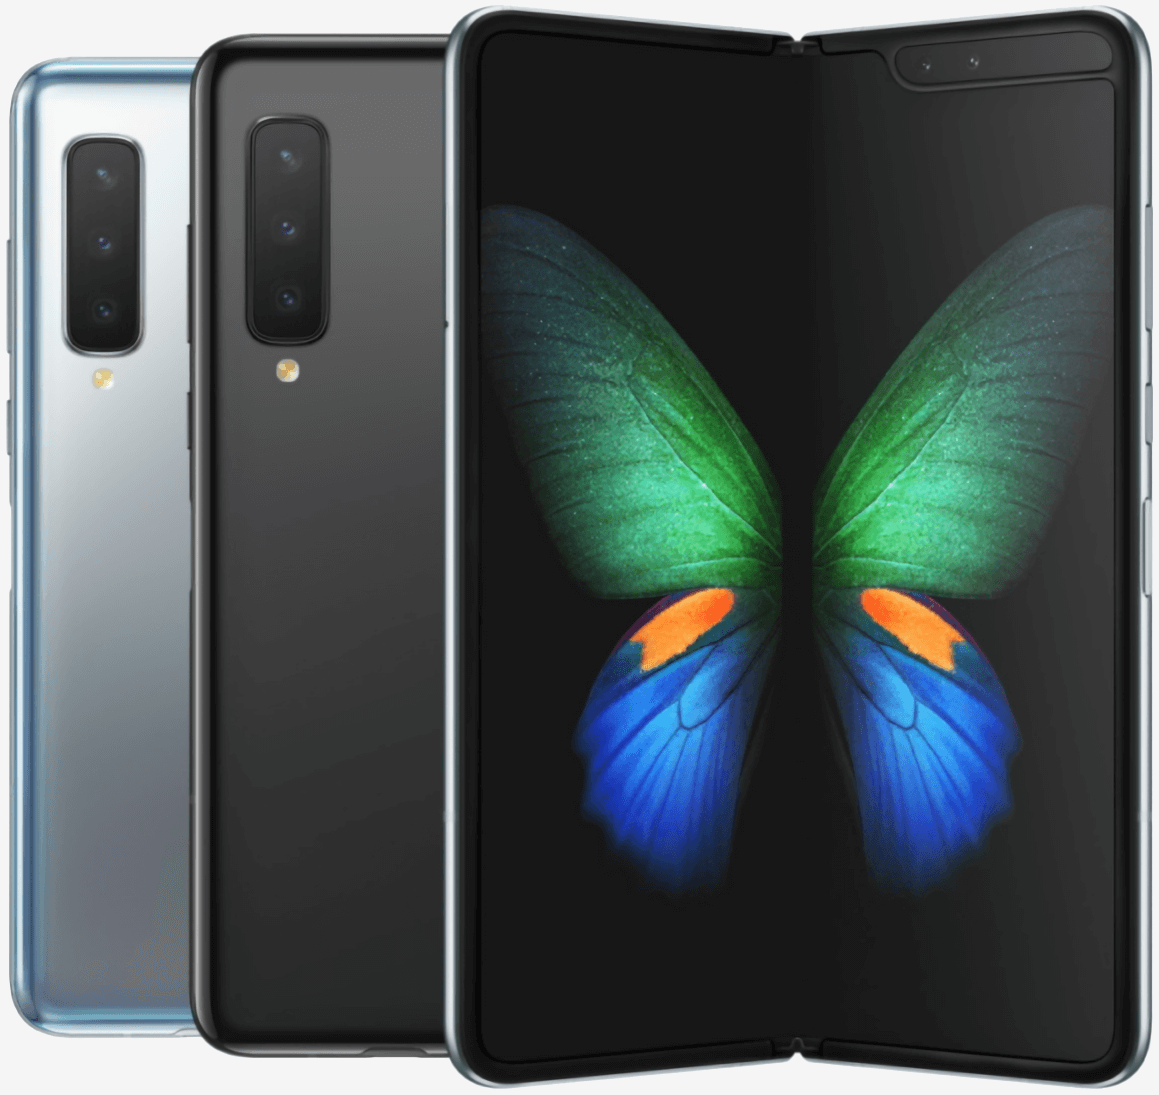 Samsung's revised Galaxy Fold gets tested at IFA 2019